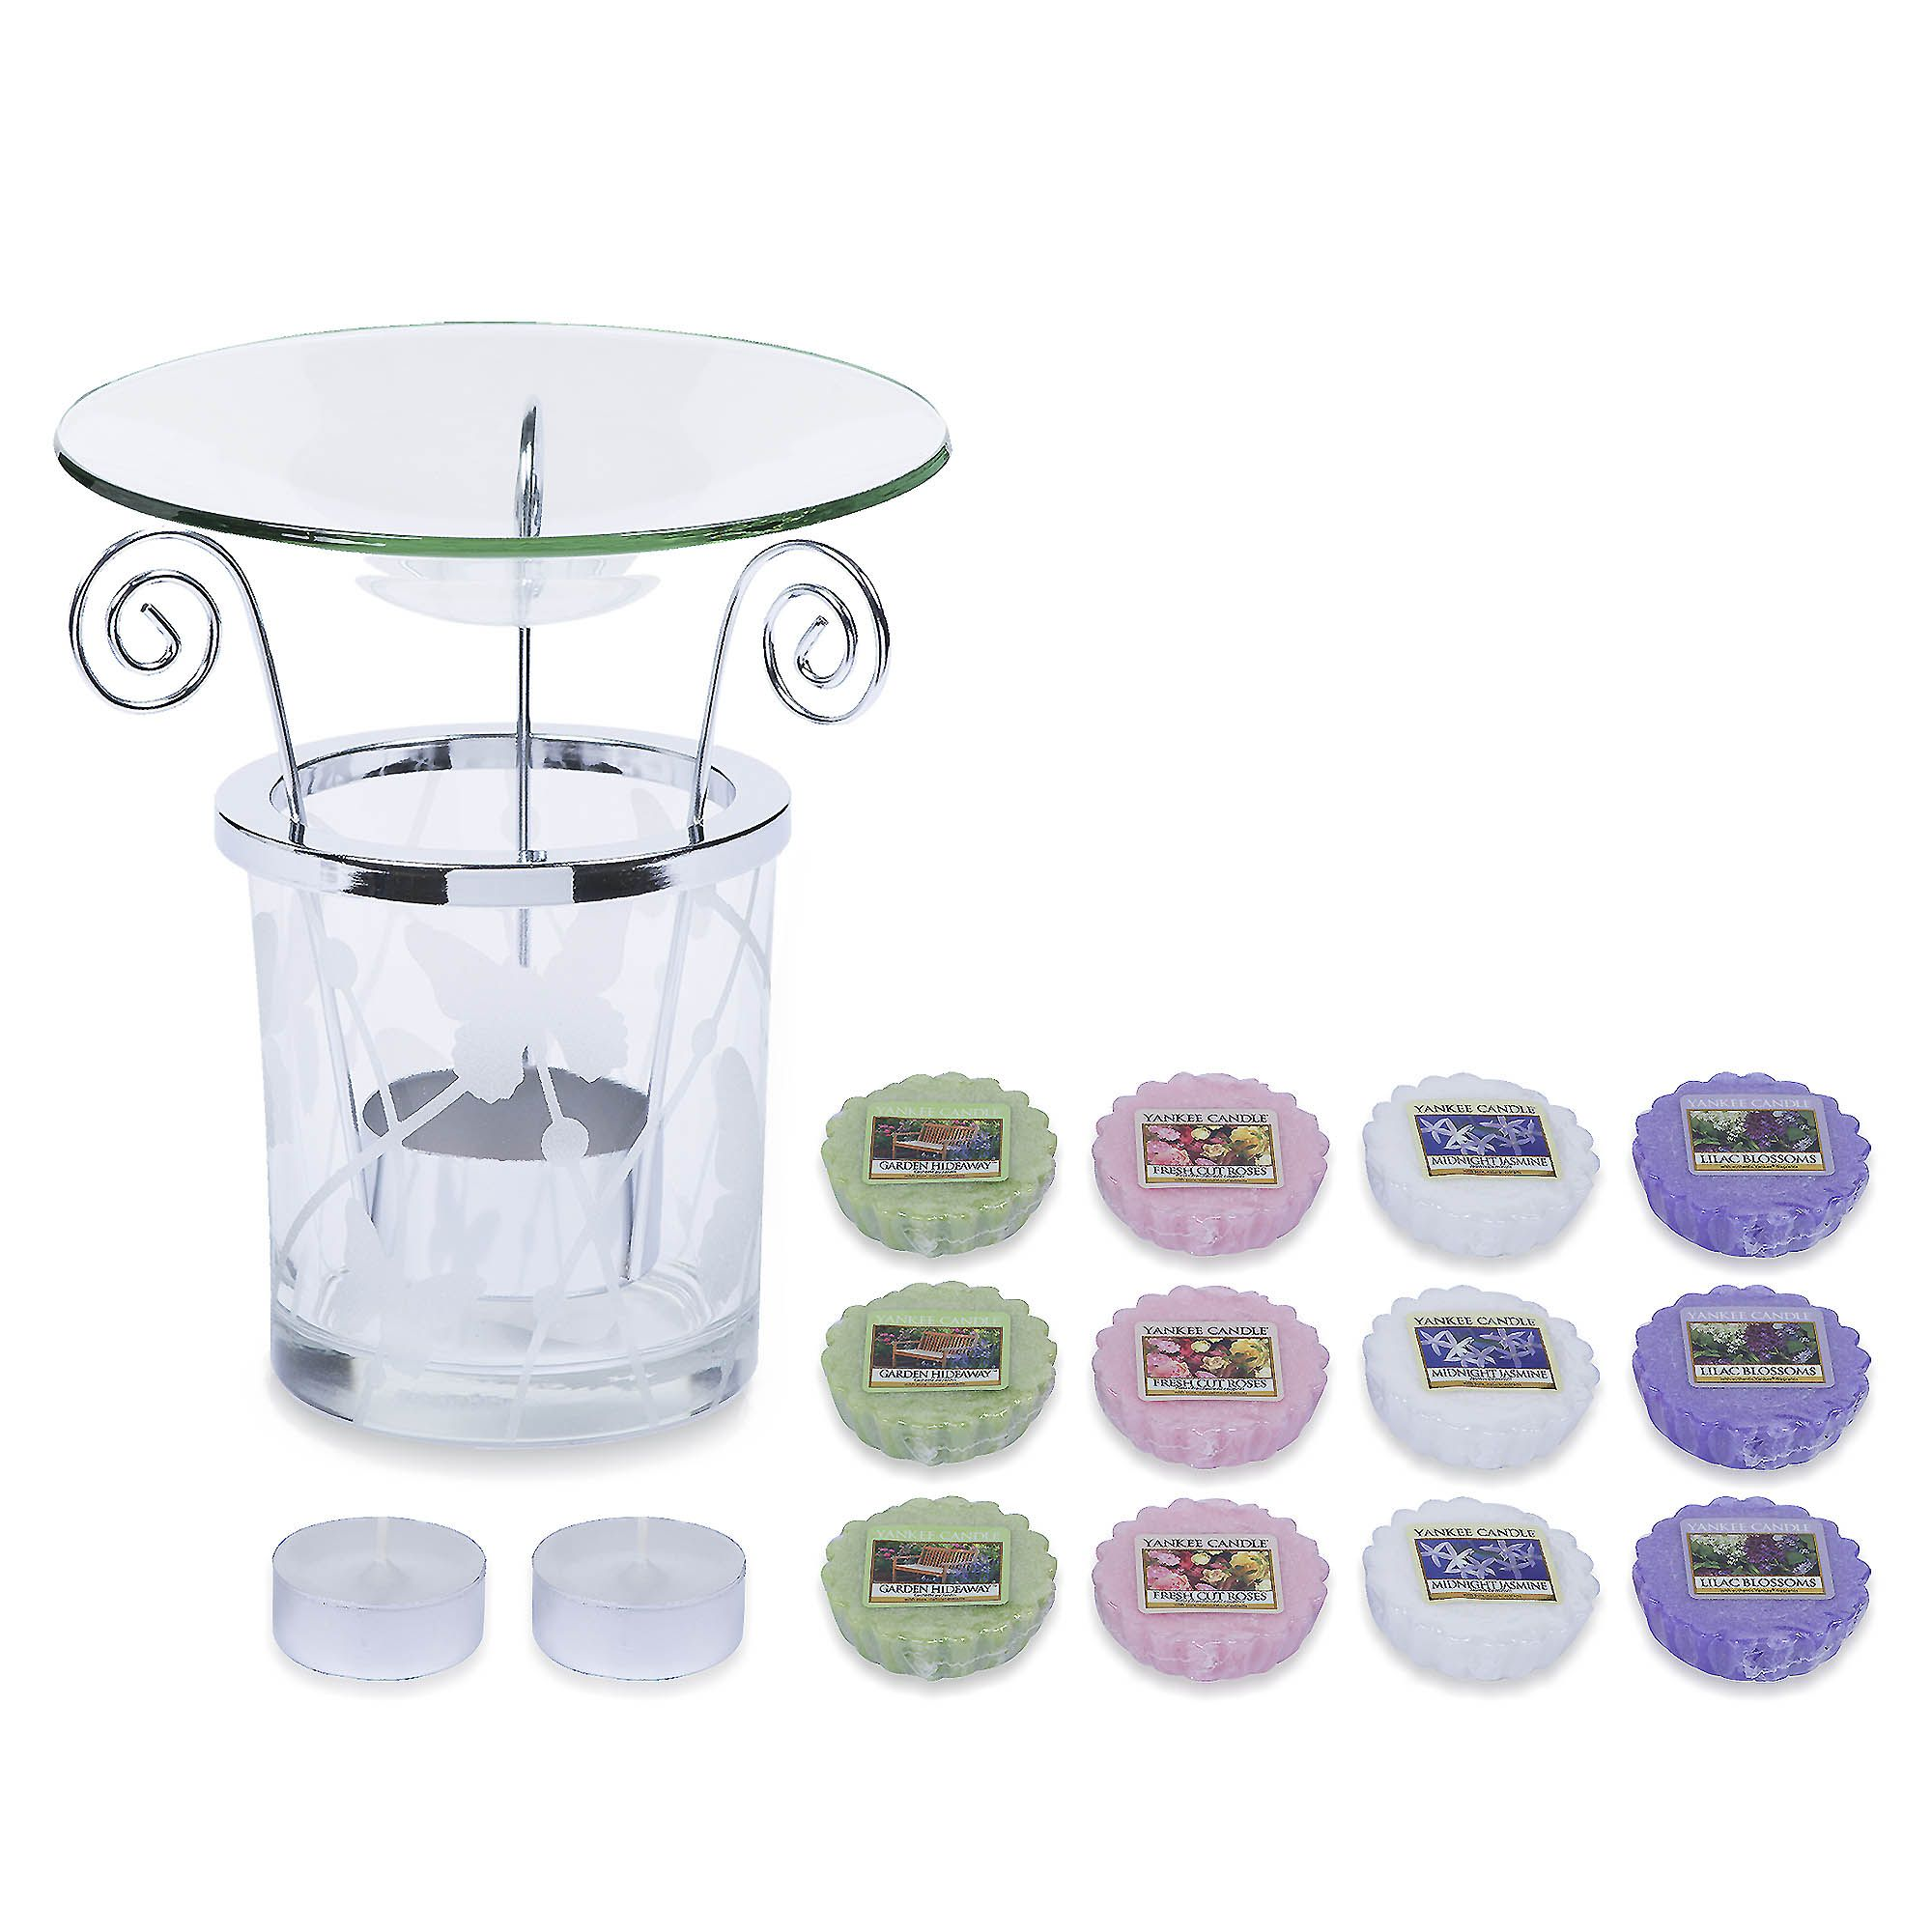 Yankee Candle Set brucia essenze: 1 bicchiere decorato, 12 essenze, 2 tealights